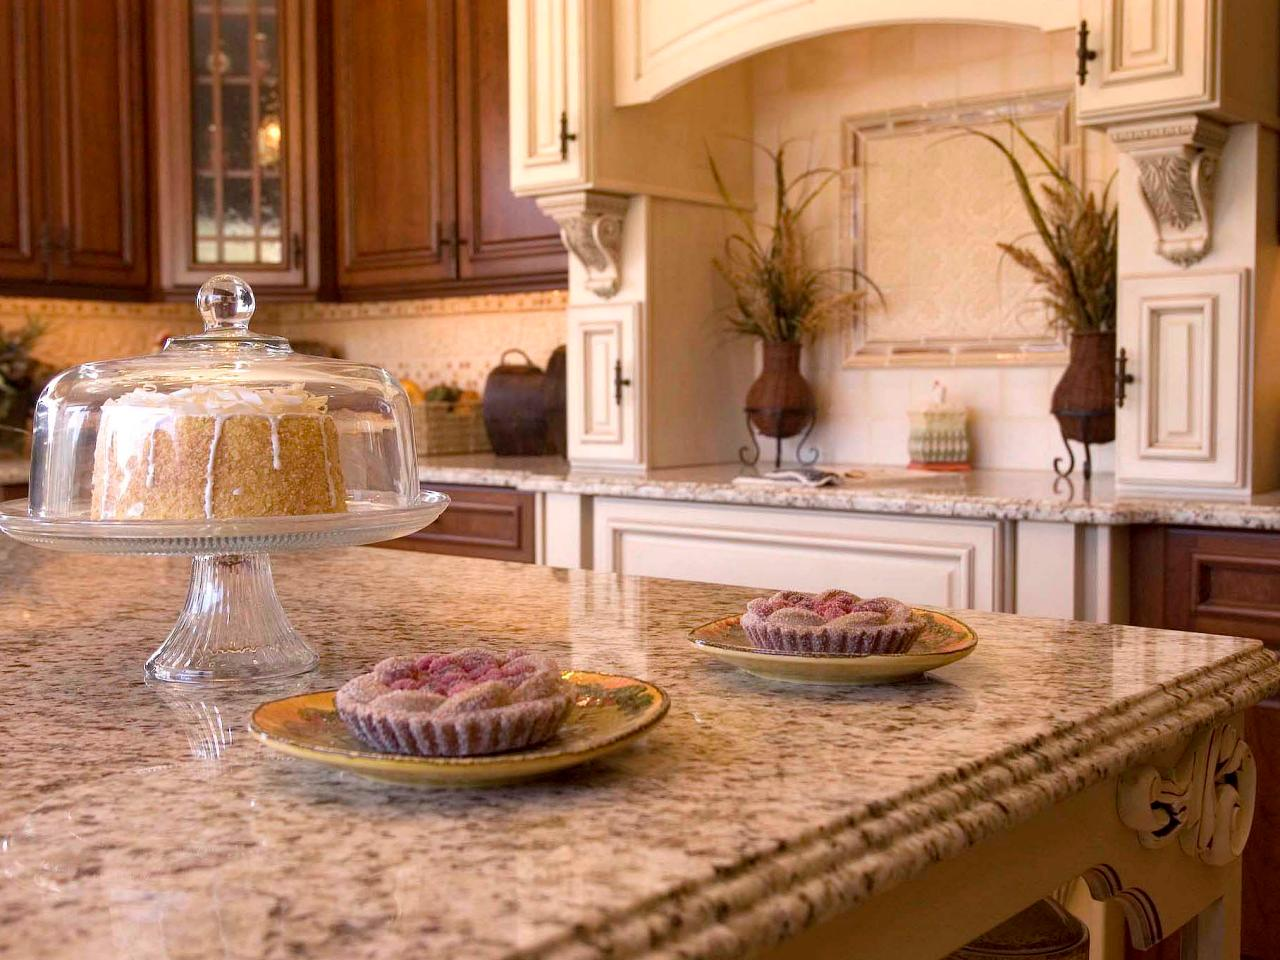 Kitchen Countertops Painting Kitchen Countertops Pictures & Ideas From Hgtv  Hgtv